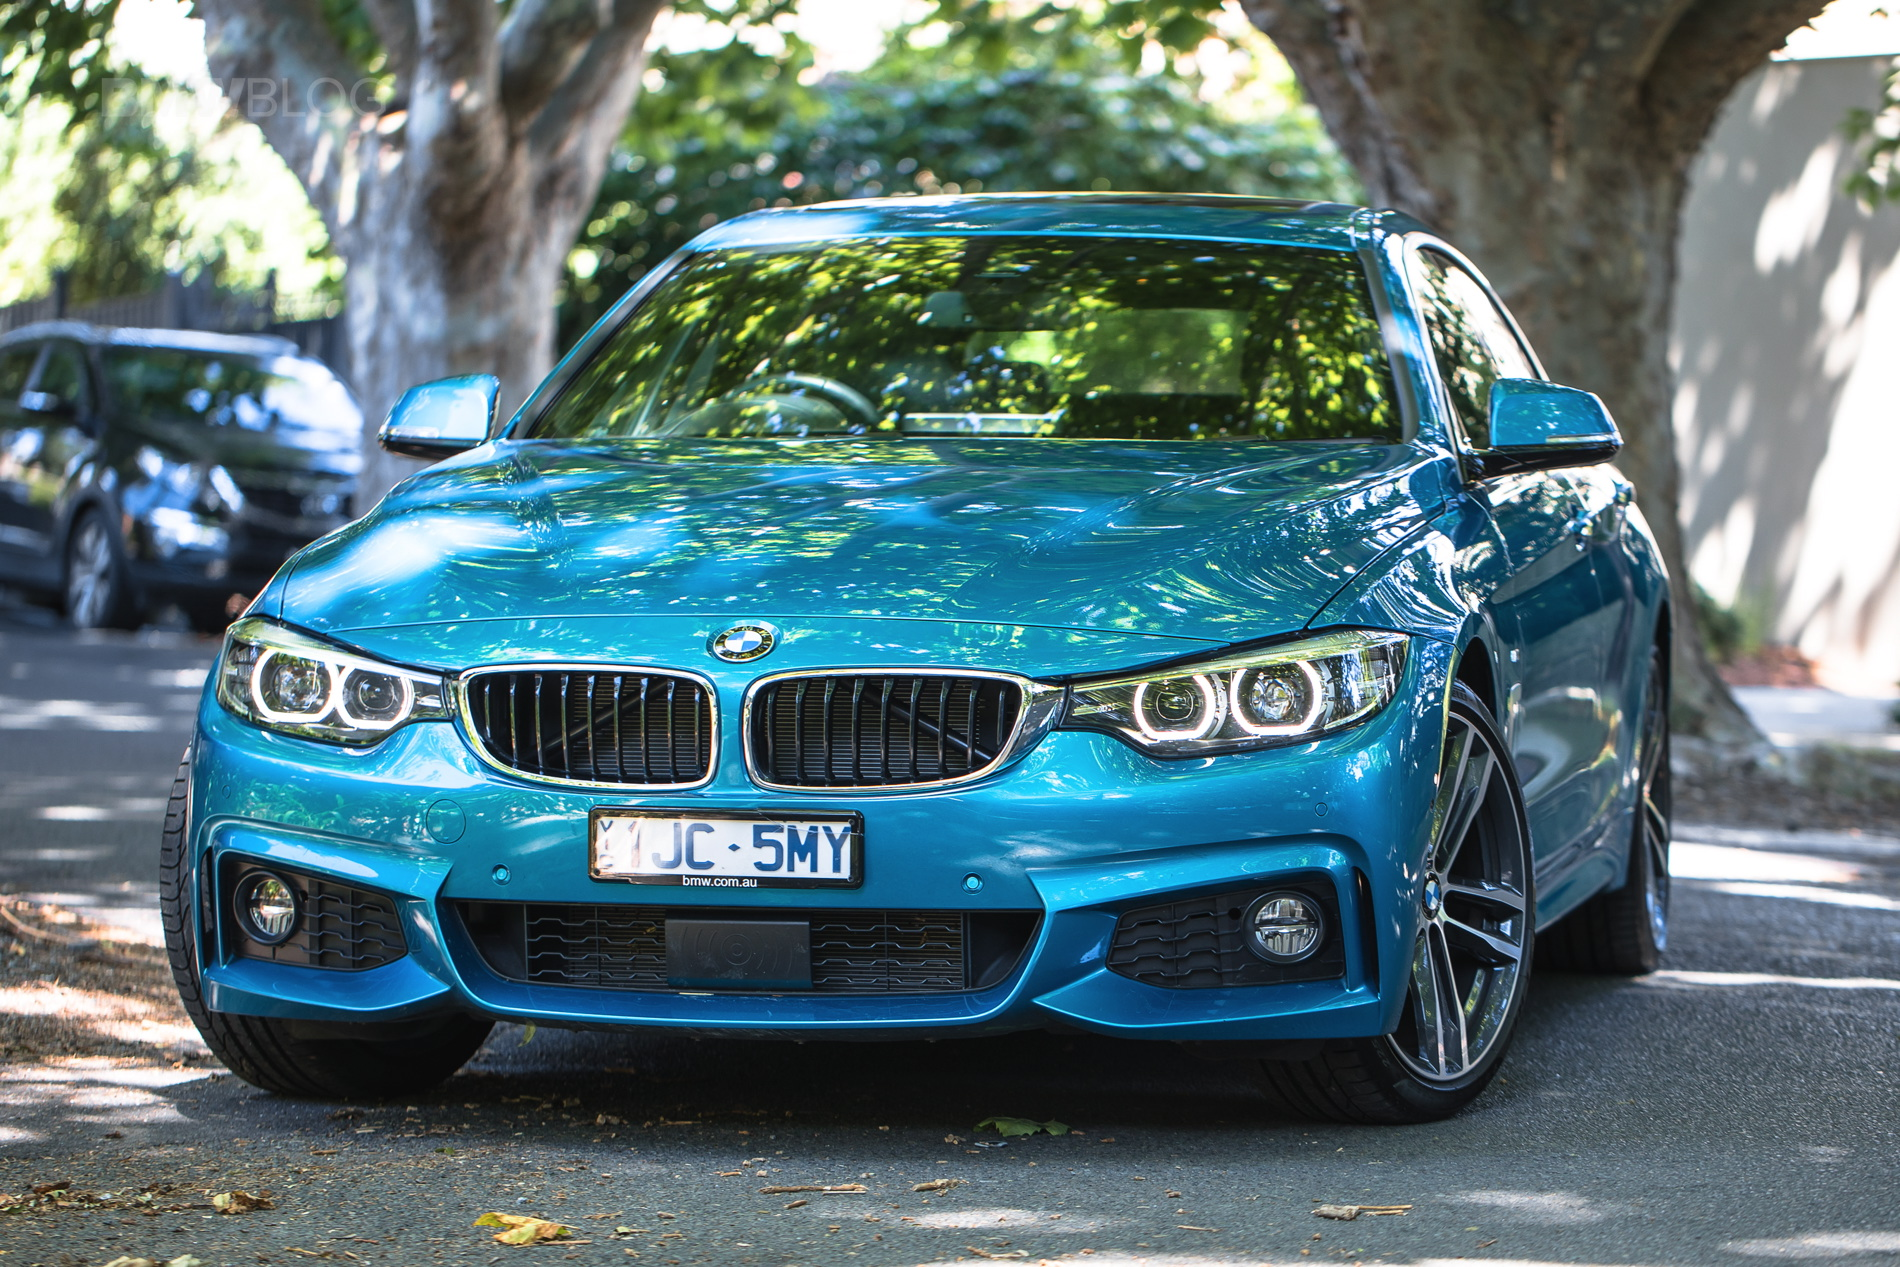 Bmw 430i Coupe >> 2018 BMW 430i Gran Coupe - Life's too short to drive a grey car